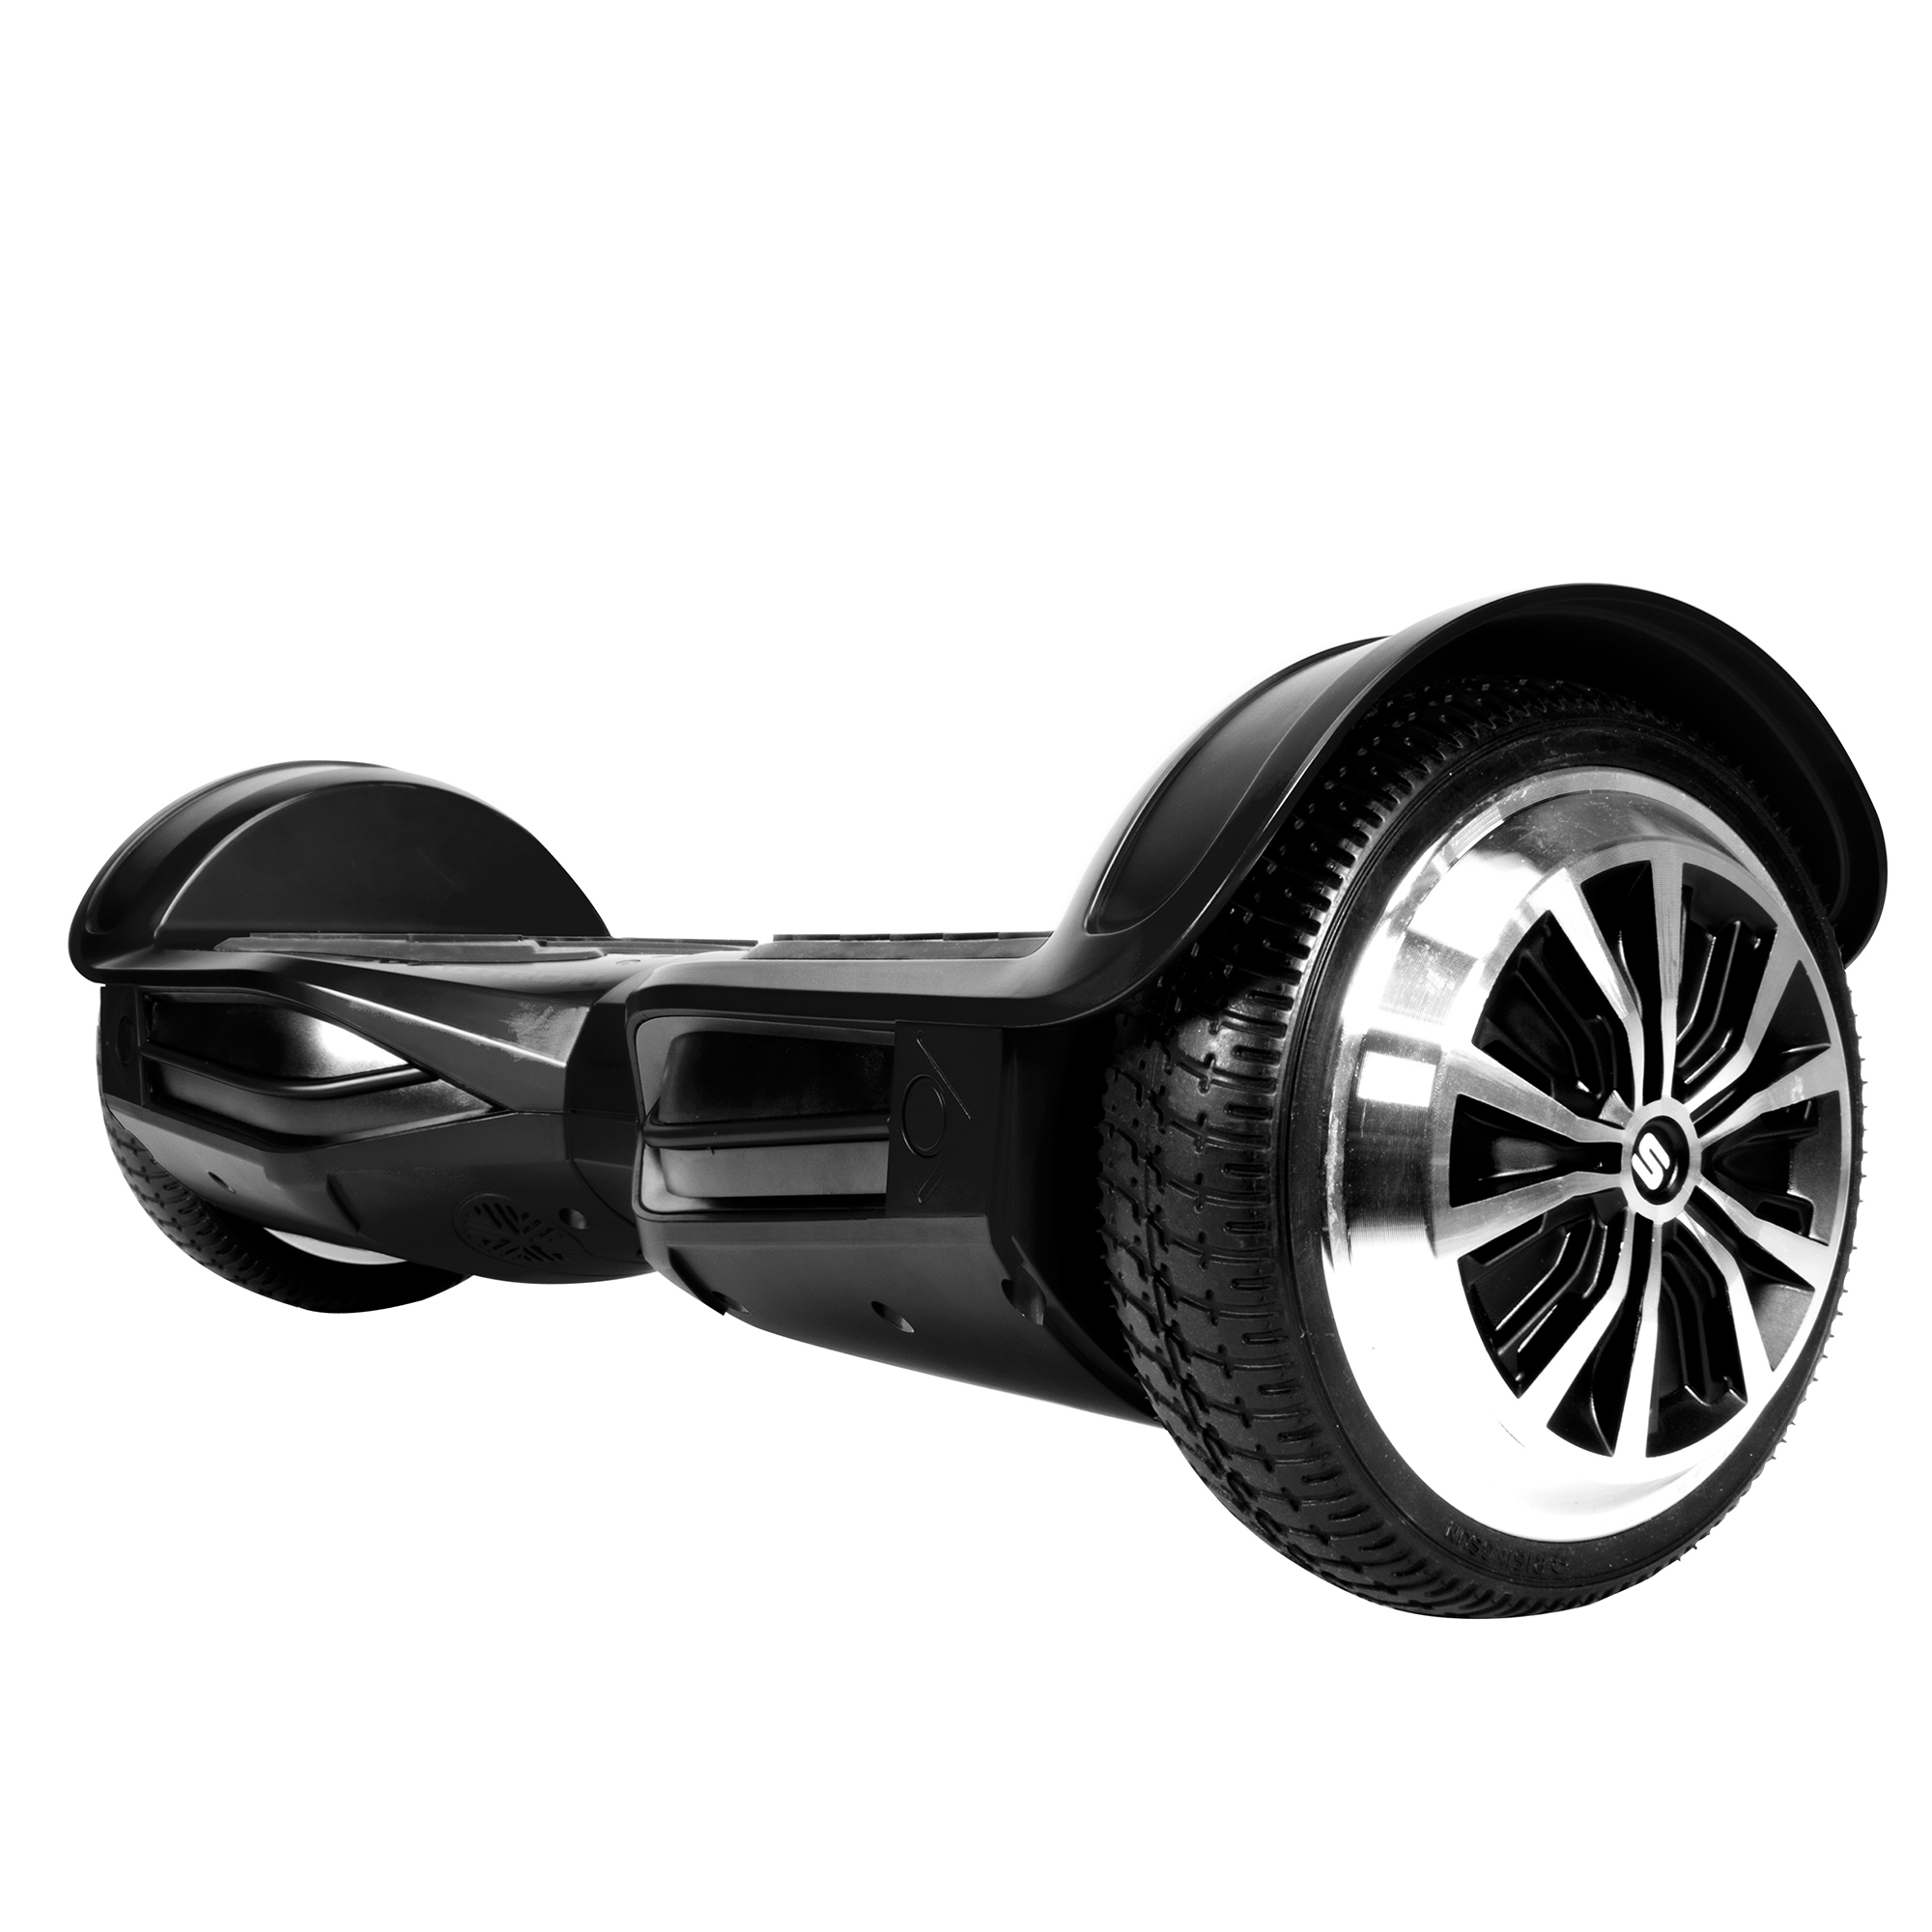 Swagboard T3 Hoverboard Recertified